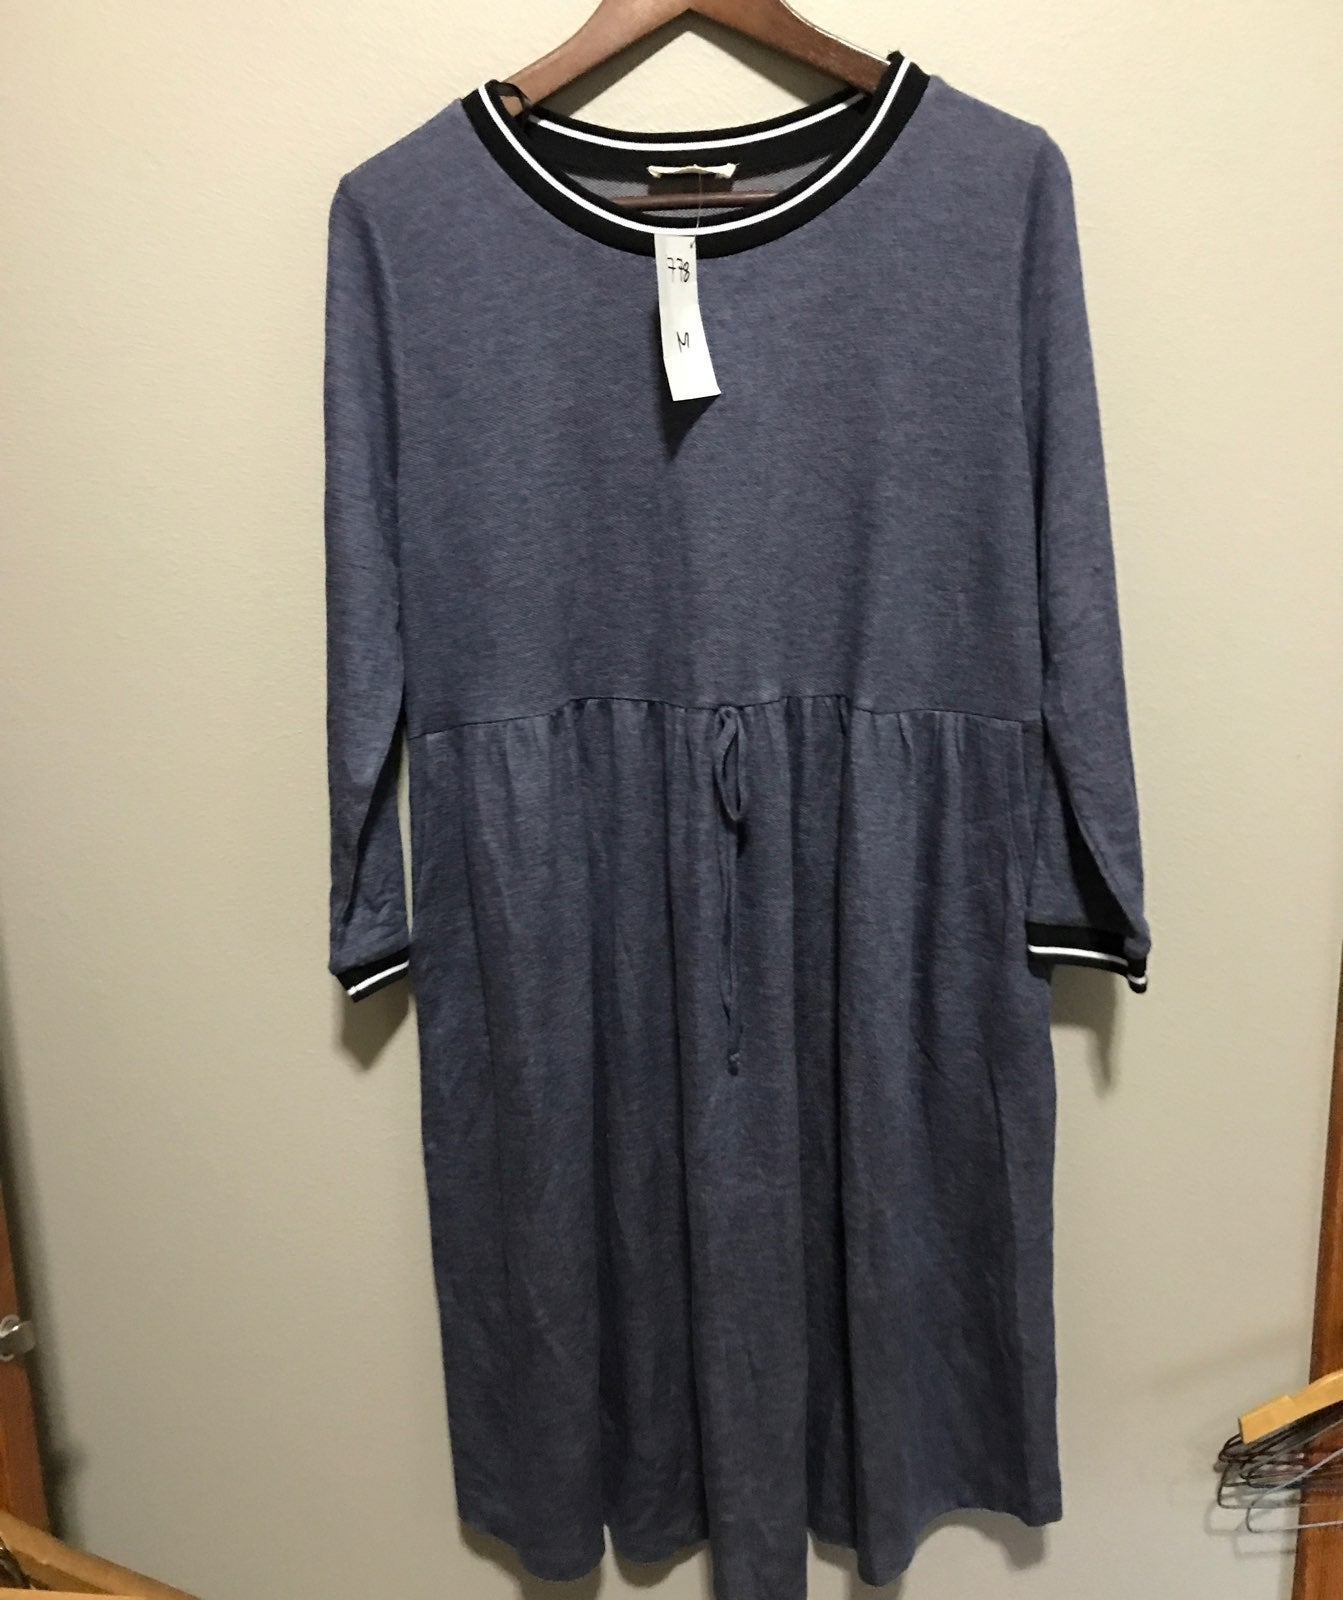 Crescent french terry type of dress